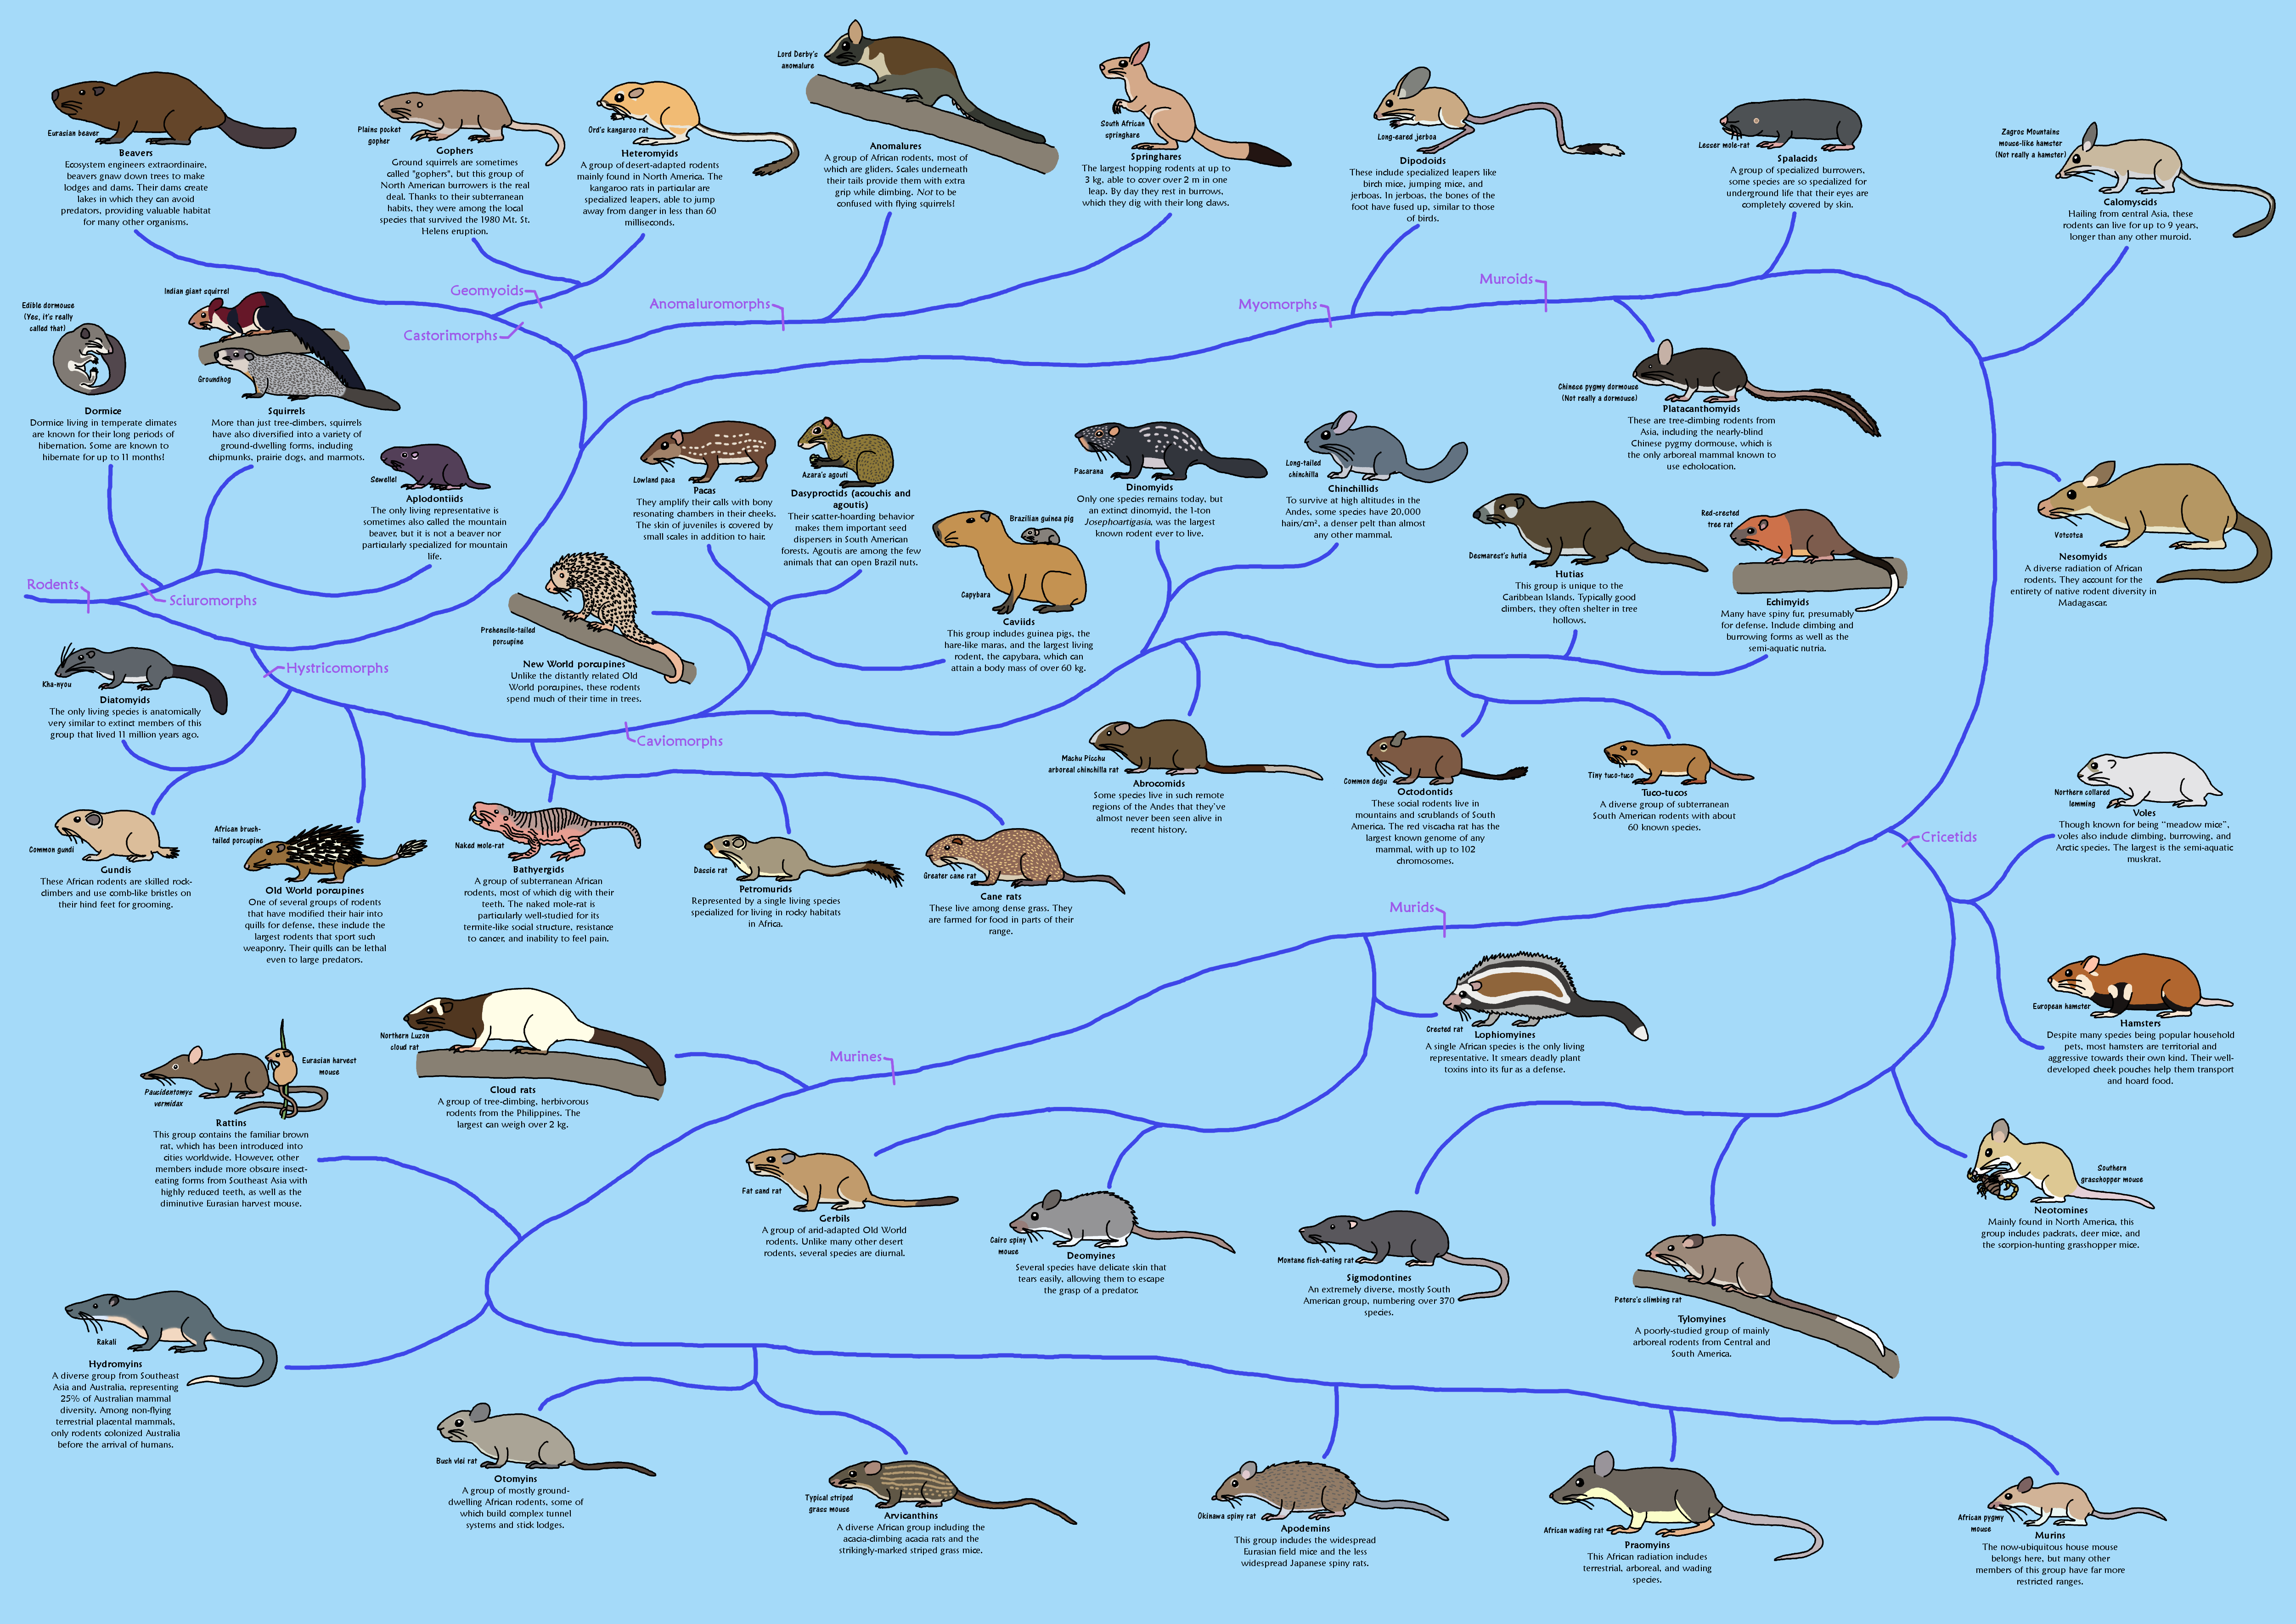 A Guide to Rodent Phylogeny